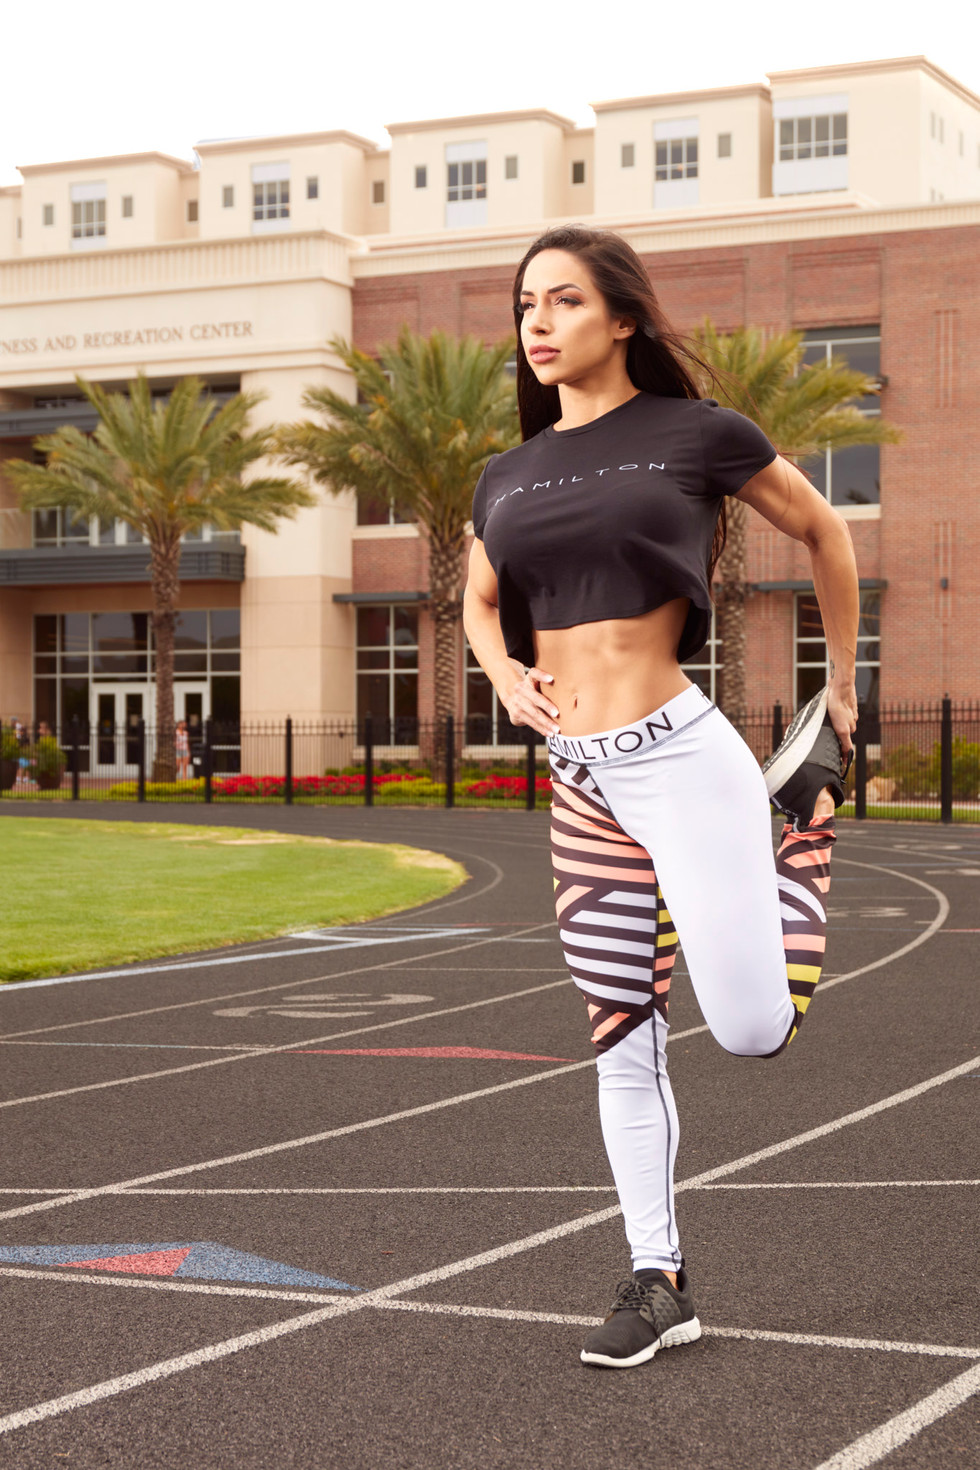 Hollywood Hamilton Clothing Women's Streetleisure Collection 2018 stretching in zig zag leggings and black crop top athleisure